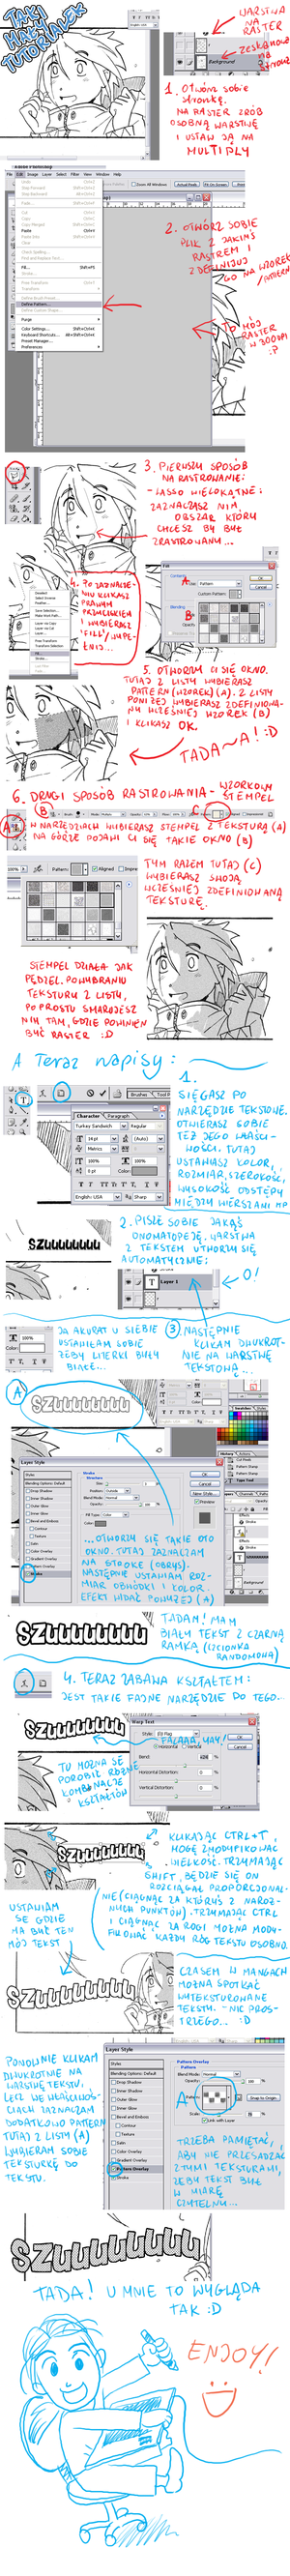 LittleTutorial4MangaMakers+pl+ by meago